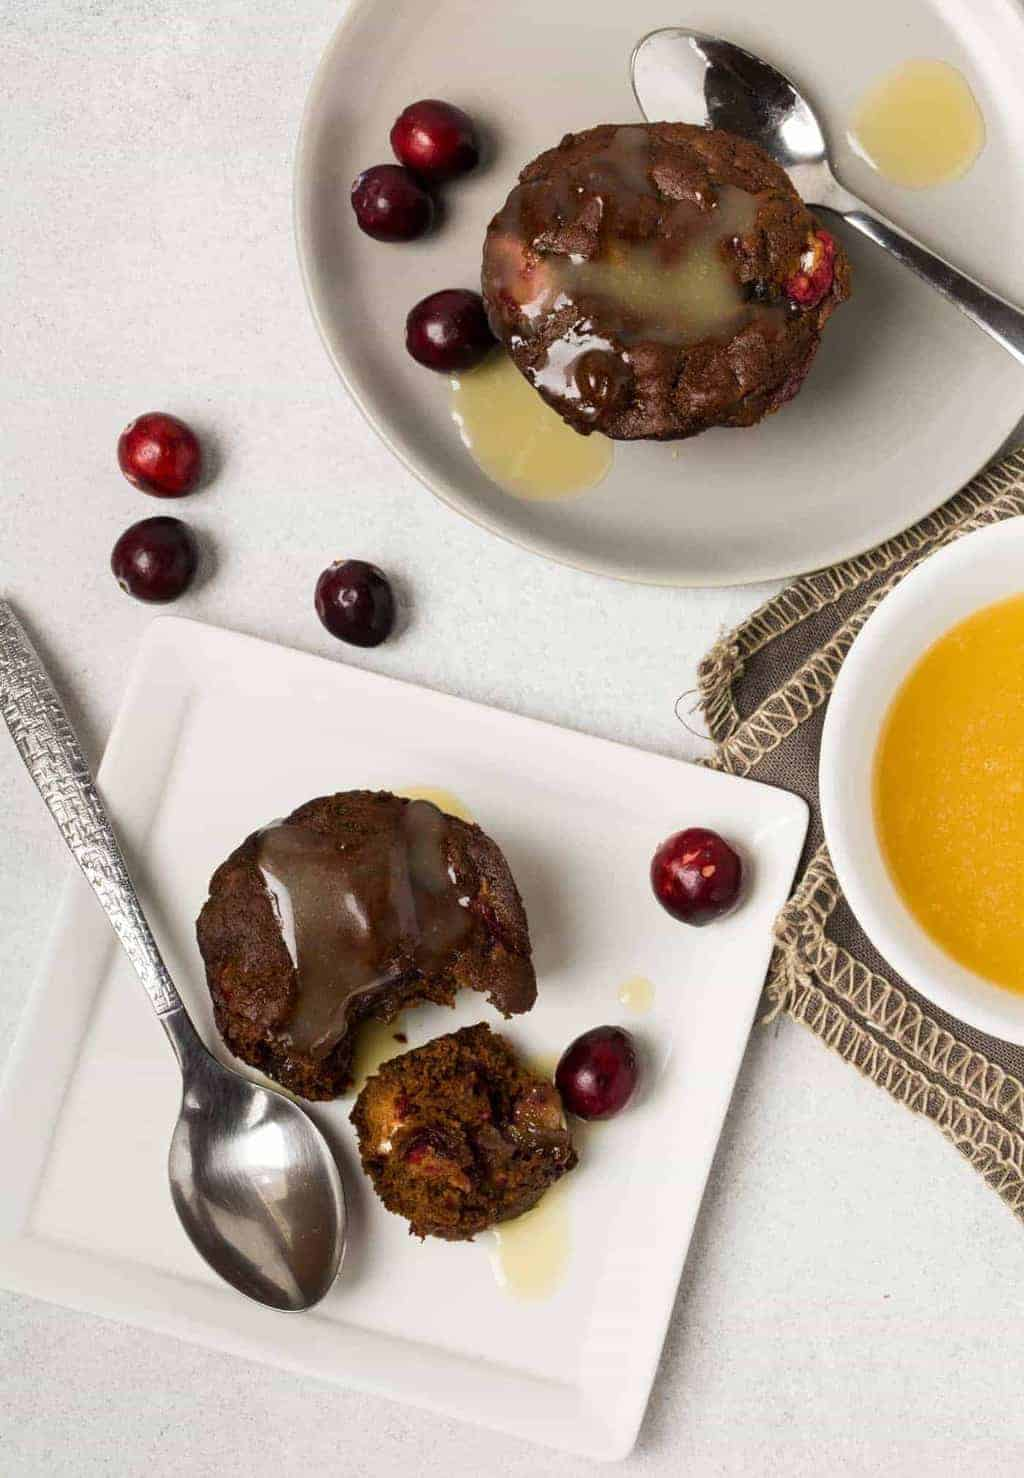 Cranbbery Puddings with Warm Vanilla Butter Sauce with fresh cranberries for garnish.